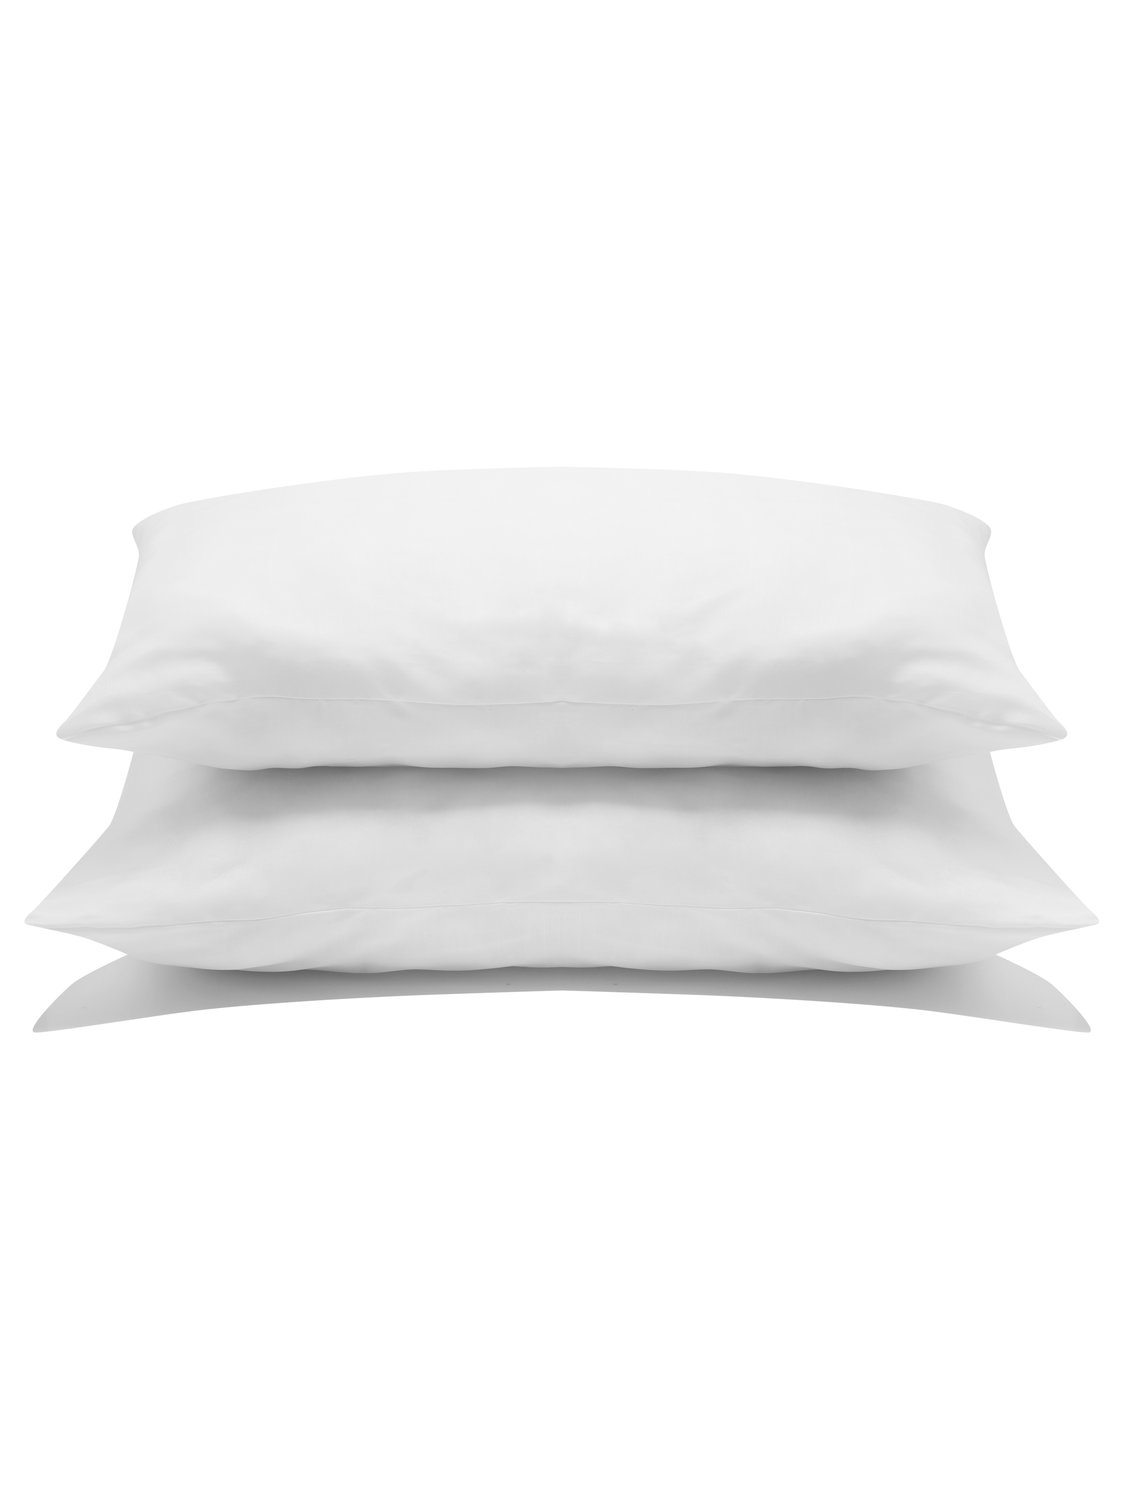 Image of Bounceback anti allergy pillow pair - 2 pack - soft support for front sleepers - White